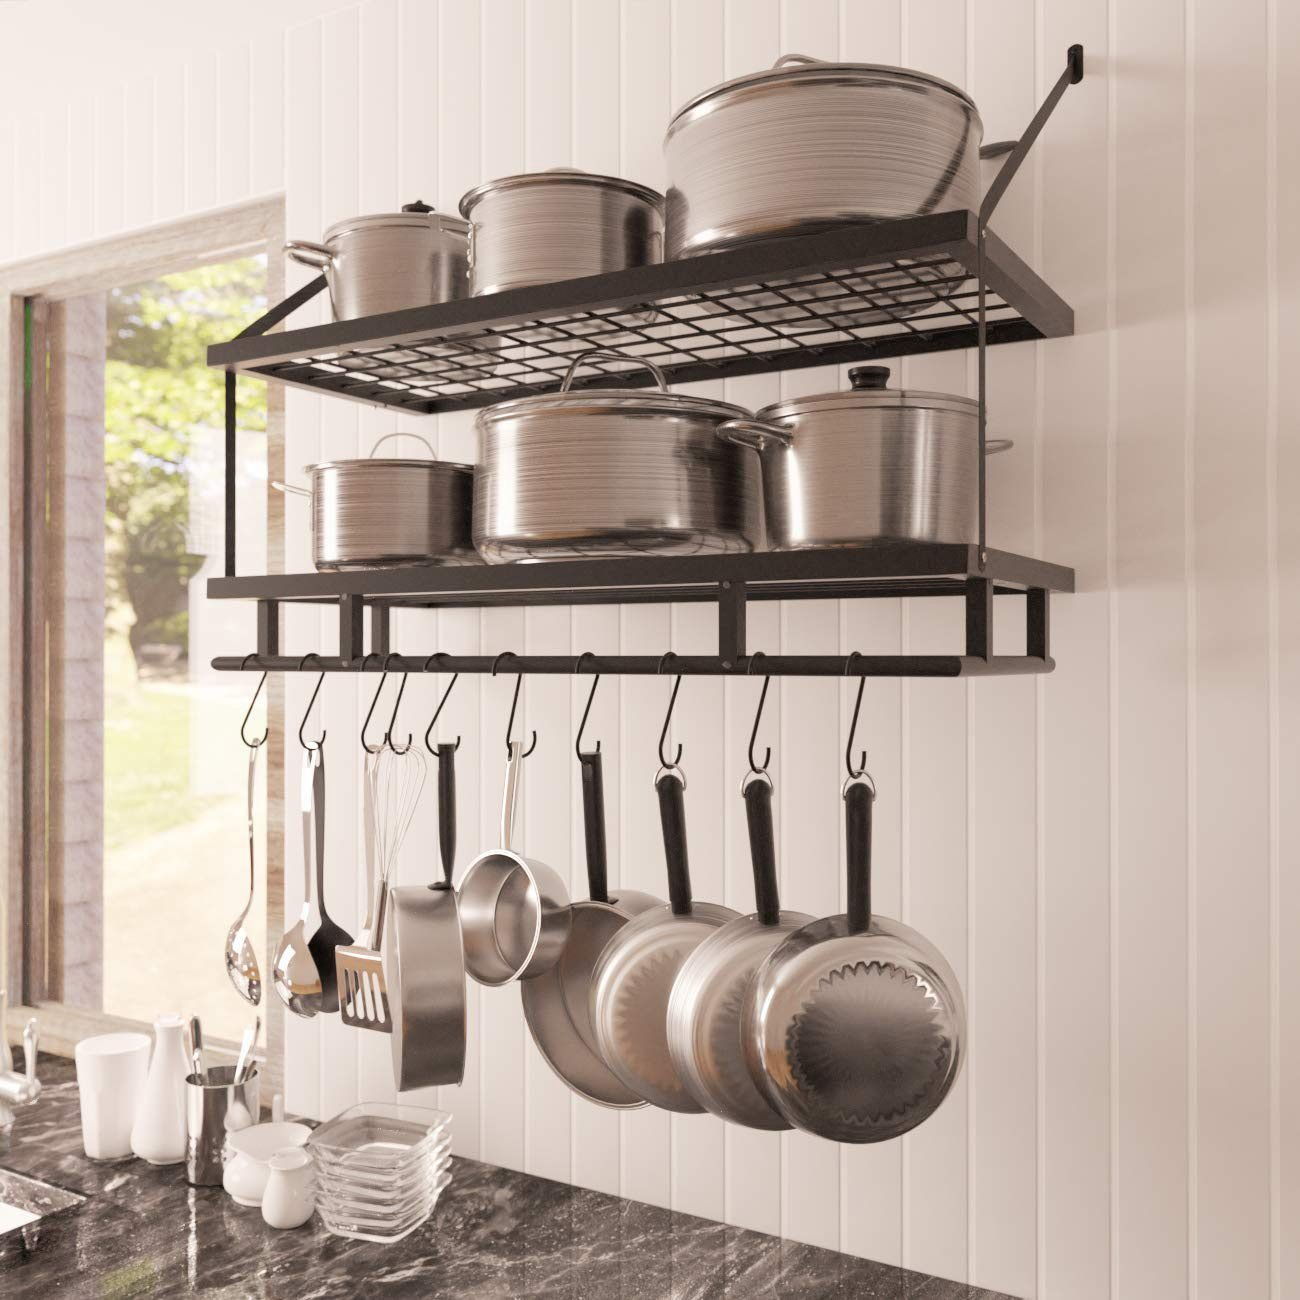 organizers for your pots and pans